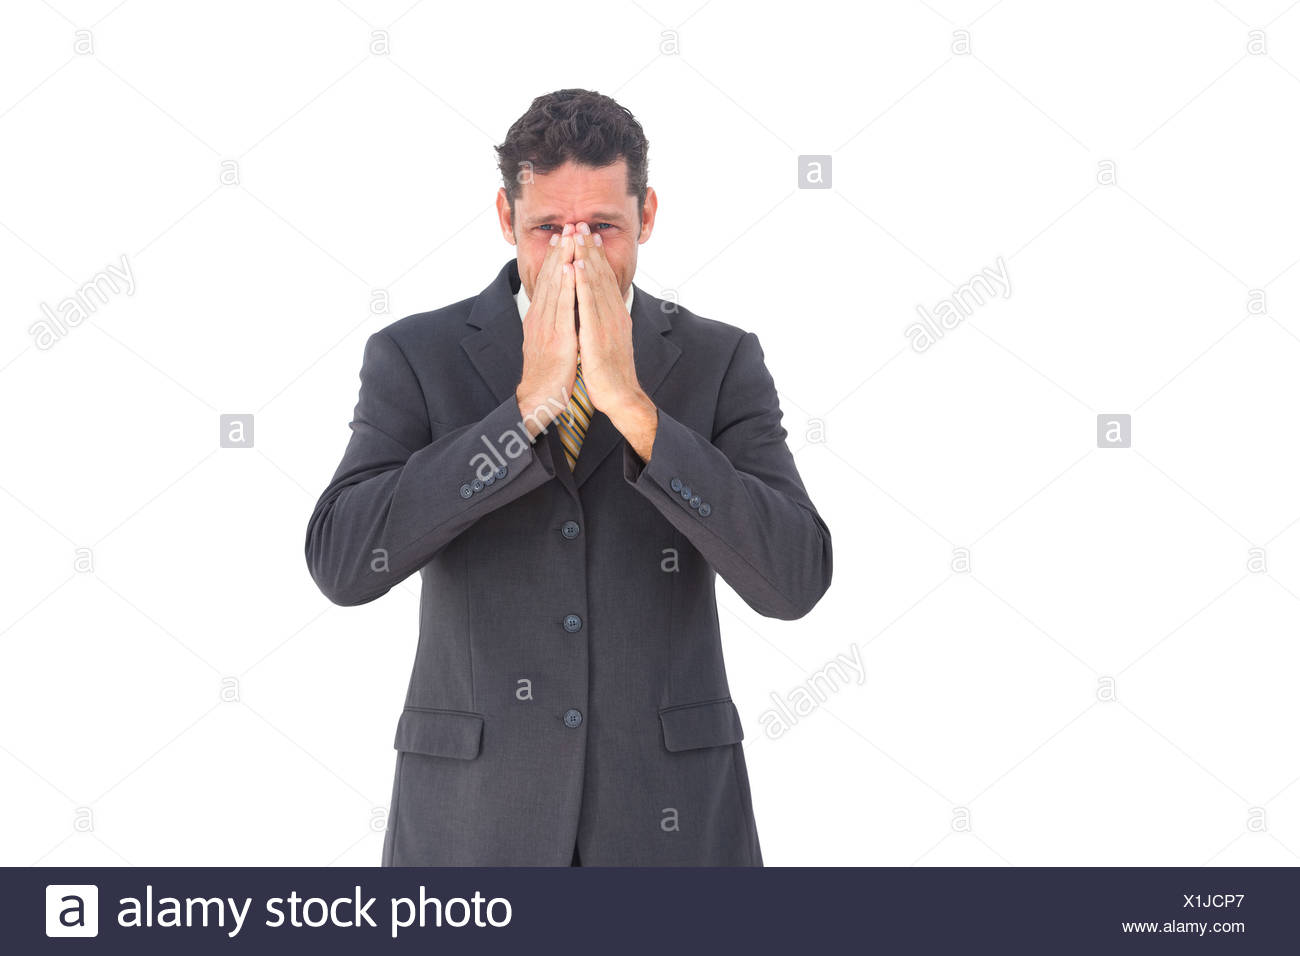 Apprehensive businessman looking at the camera - Stock Image